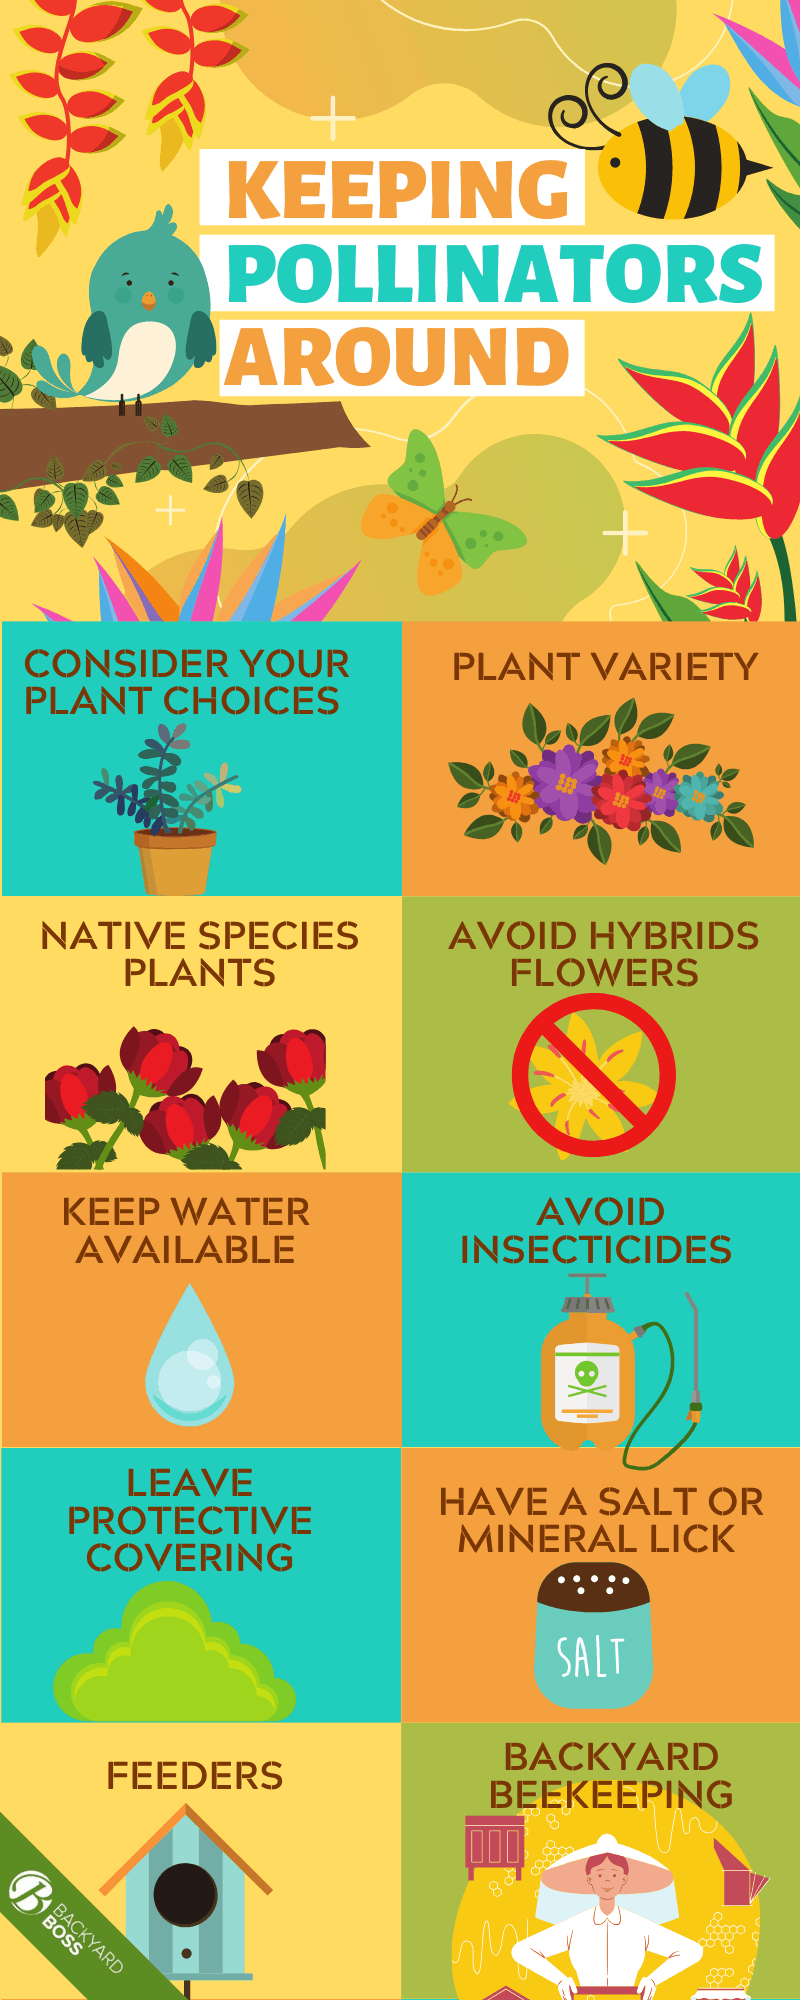 Keeping Pollinators Around - Infographic